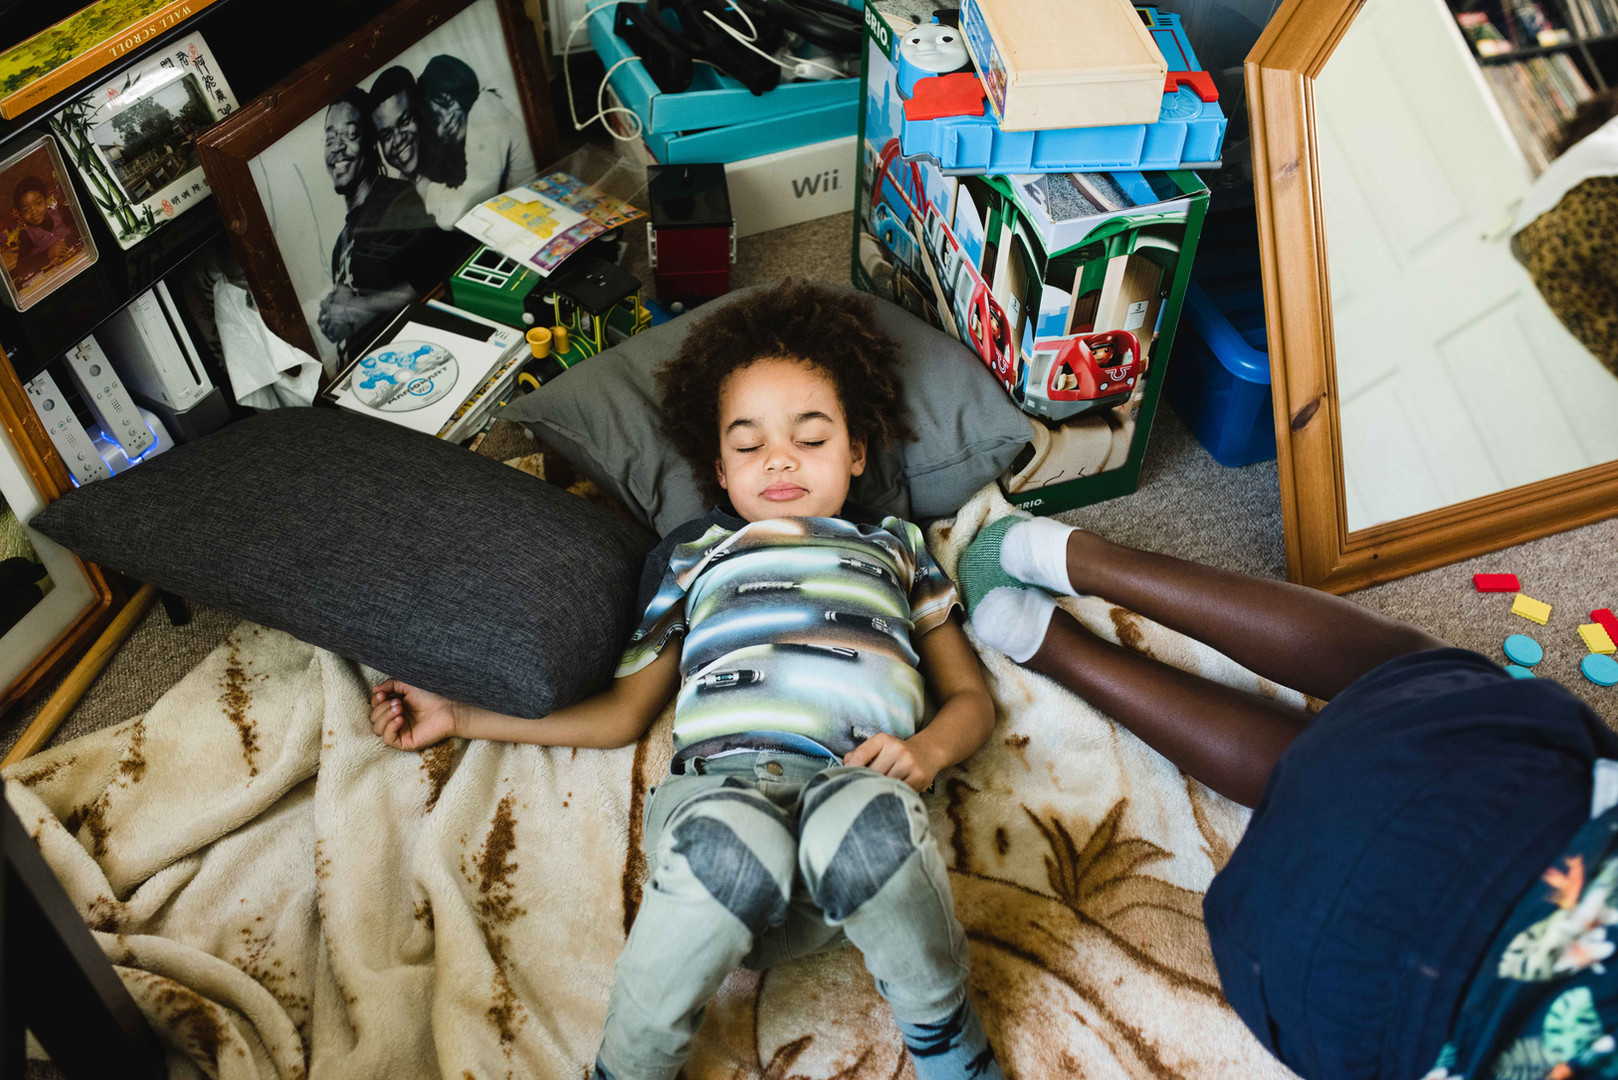 Family documentary picture showing young child relaxing indoors